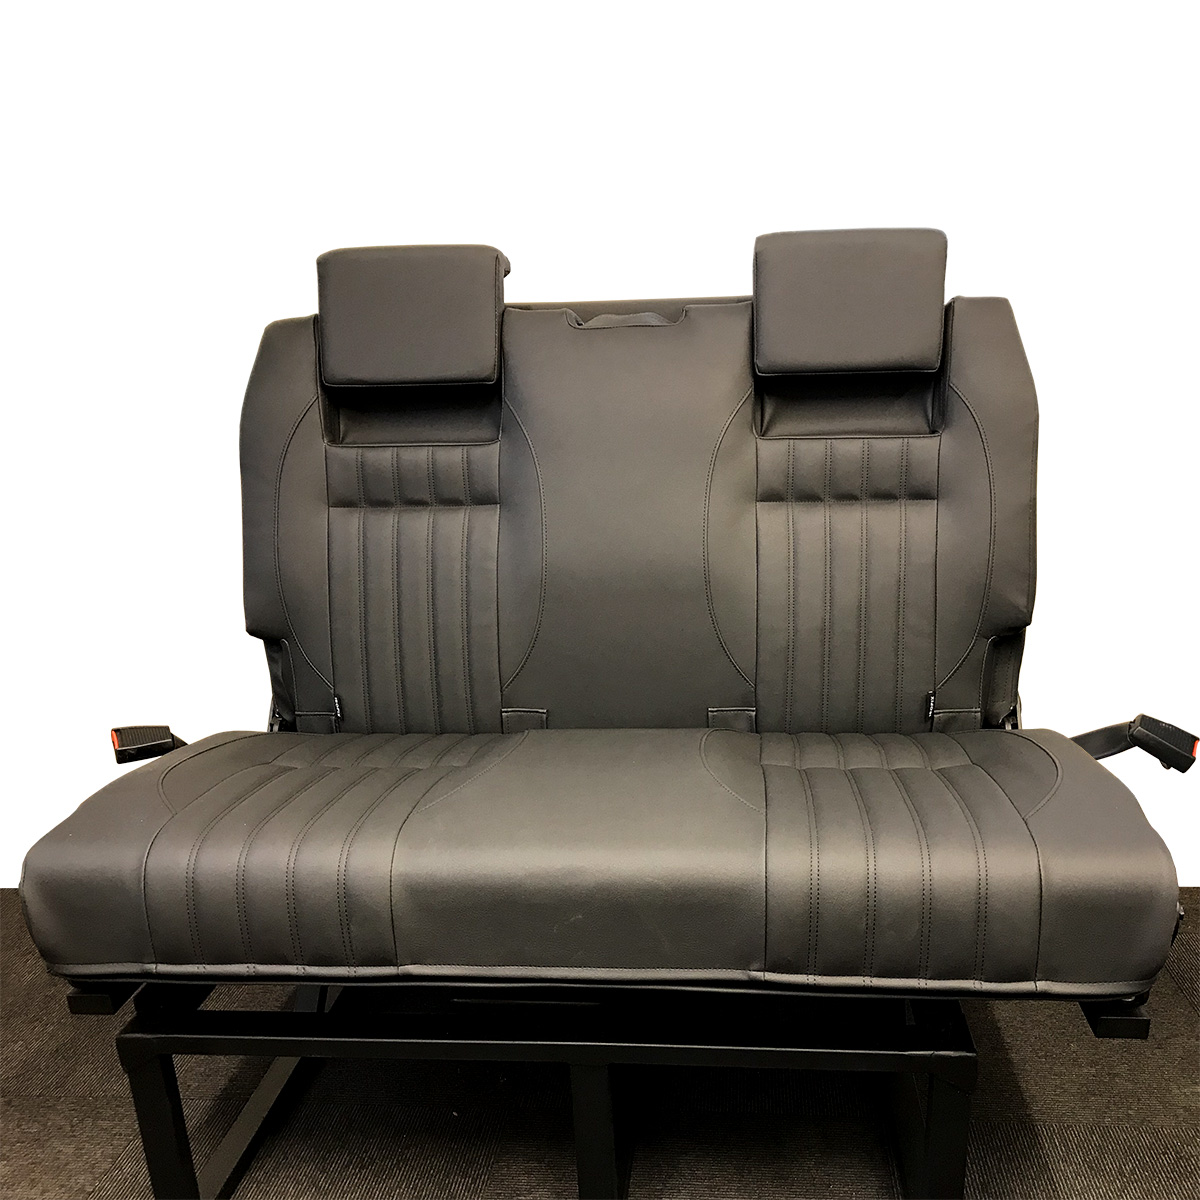 sofa upholsterers leicester costco reclining reviews 2 single front seats with arm and head rests a 3 4